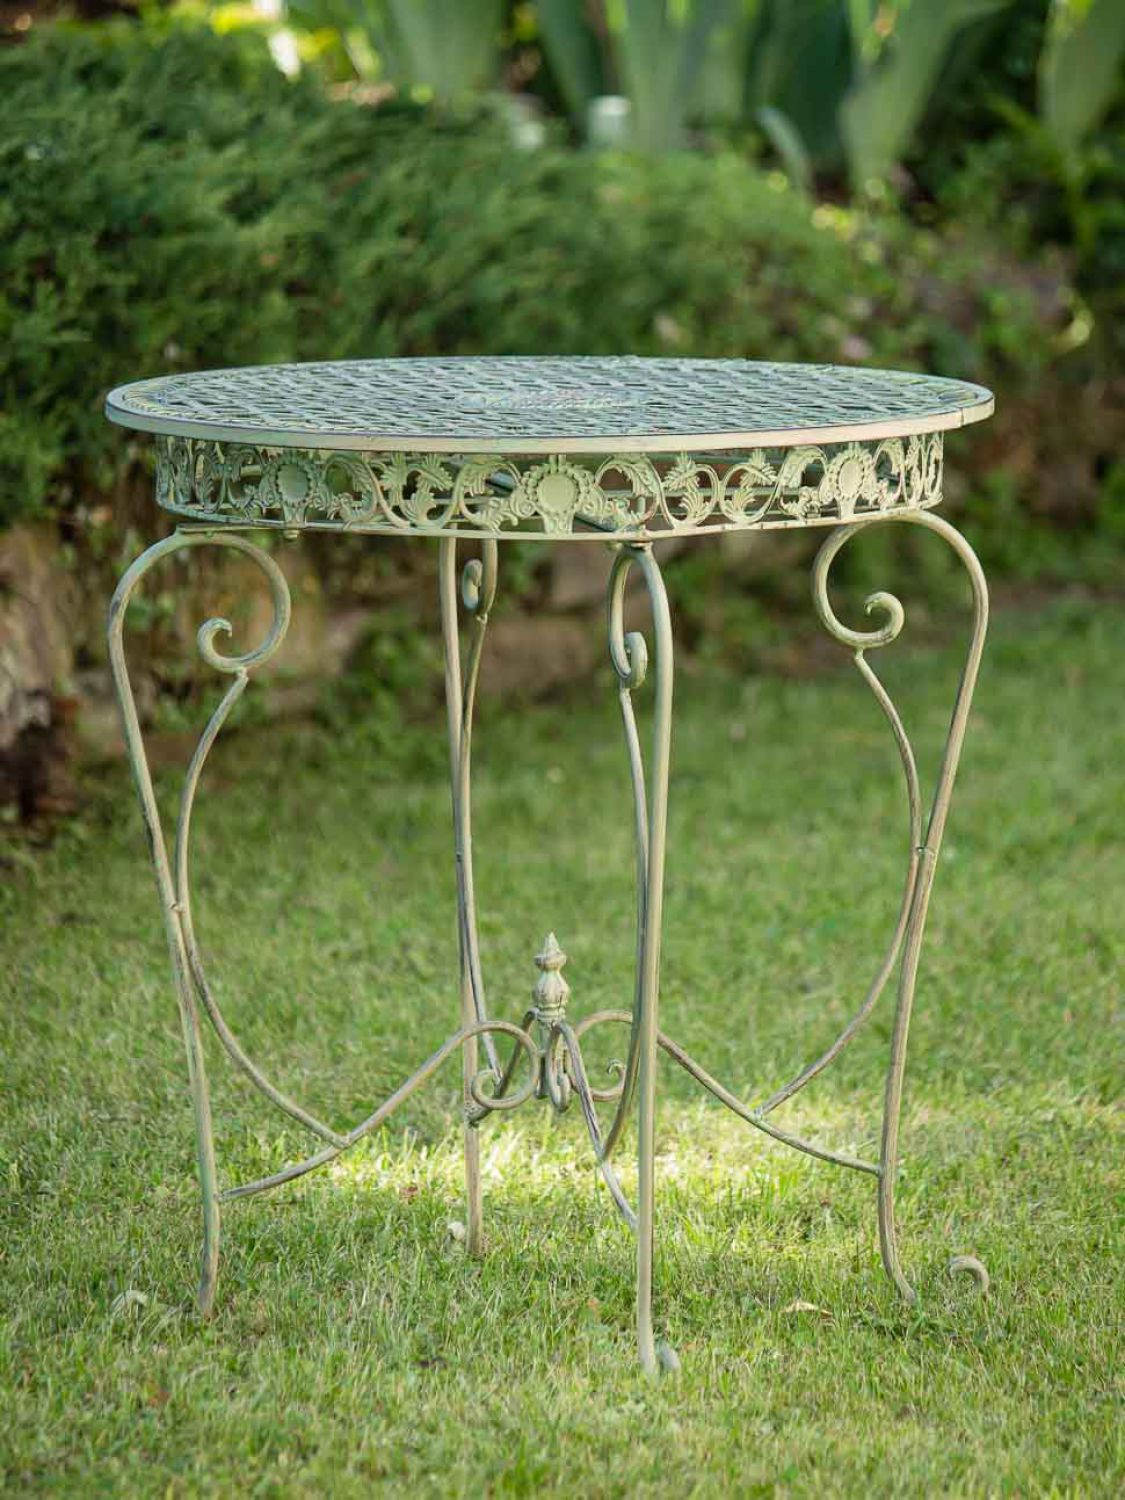 gartentisch in hellem creme gr n tisch garten eisen antik stil garden table iron ebay. Black Bedroom Furniture Sets. Home Design Ideas